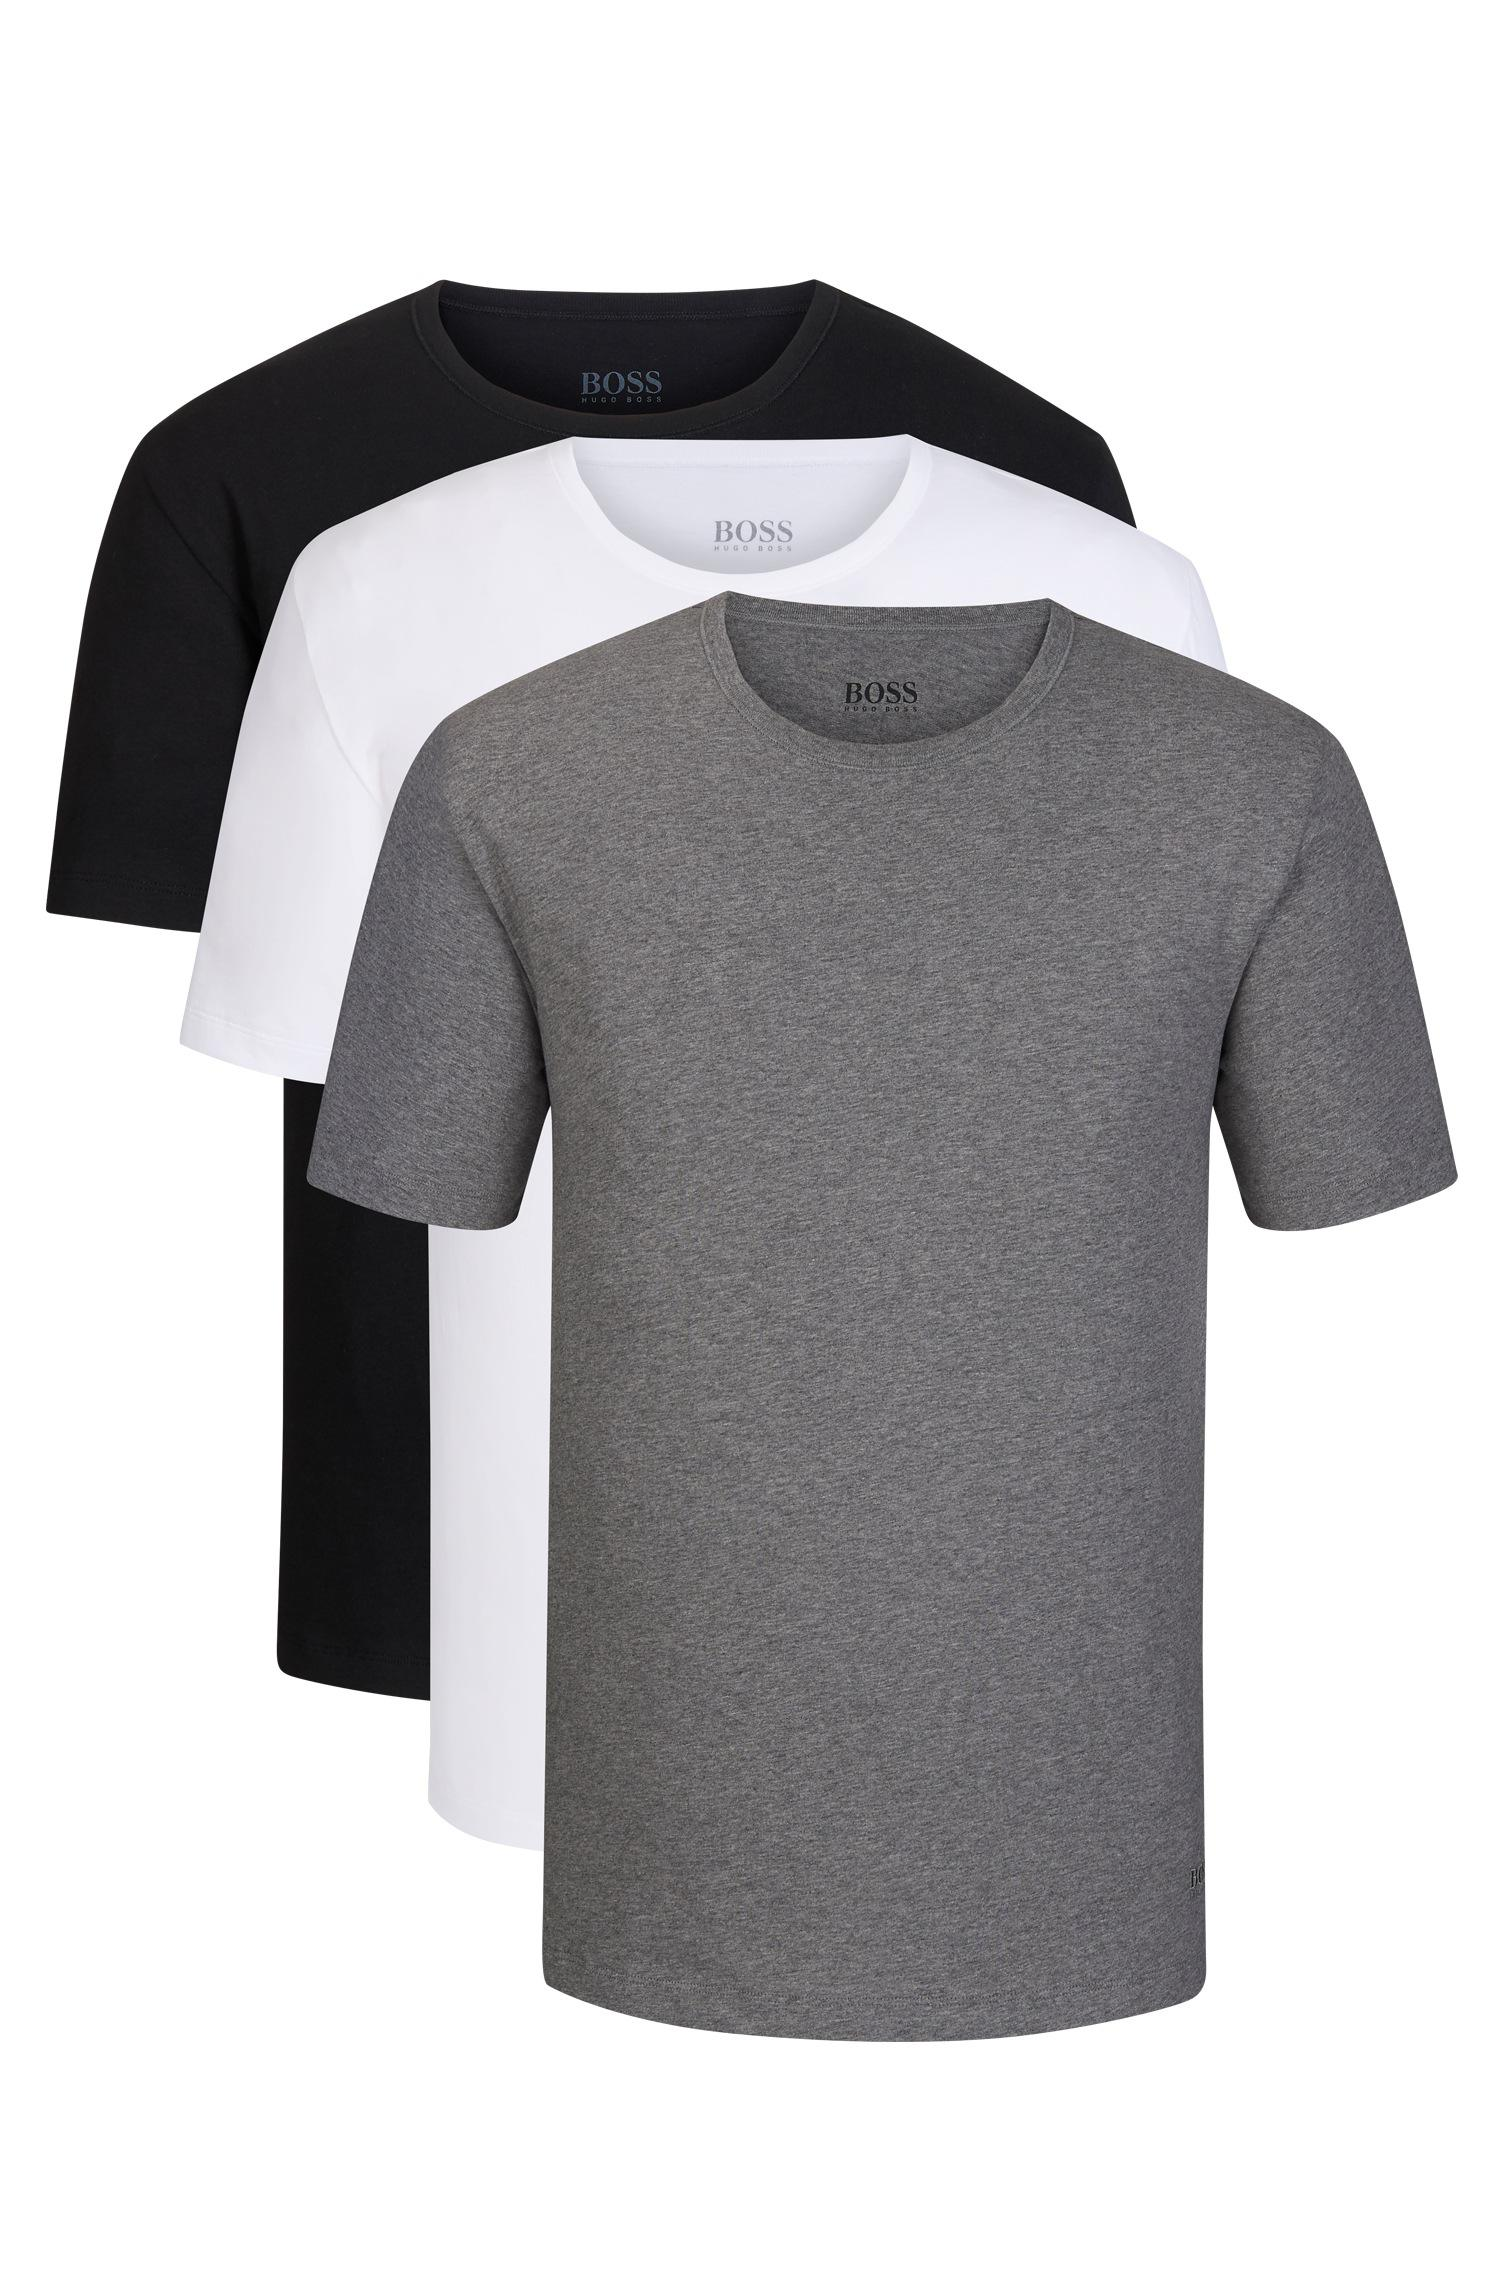 46b06dc1af4 Lyst - BOSS Cotton Jersey T-shirt, 3-pack | T-shirt Rn in Gray for Men